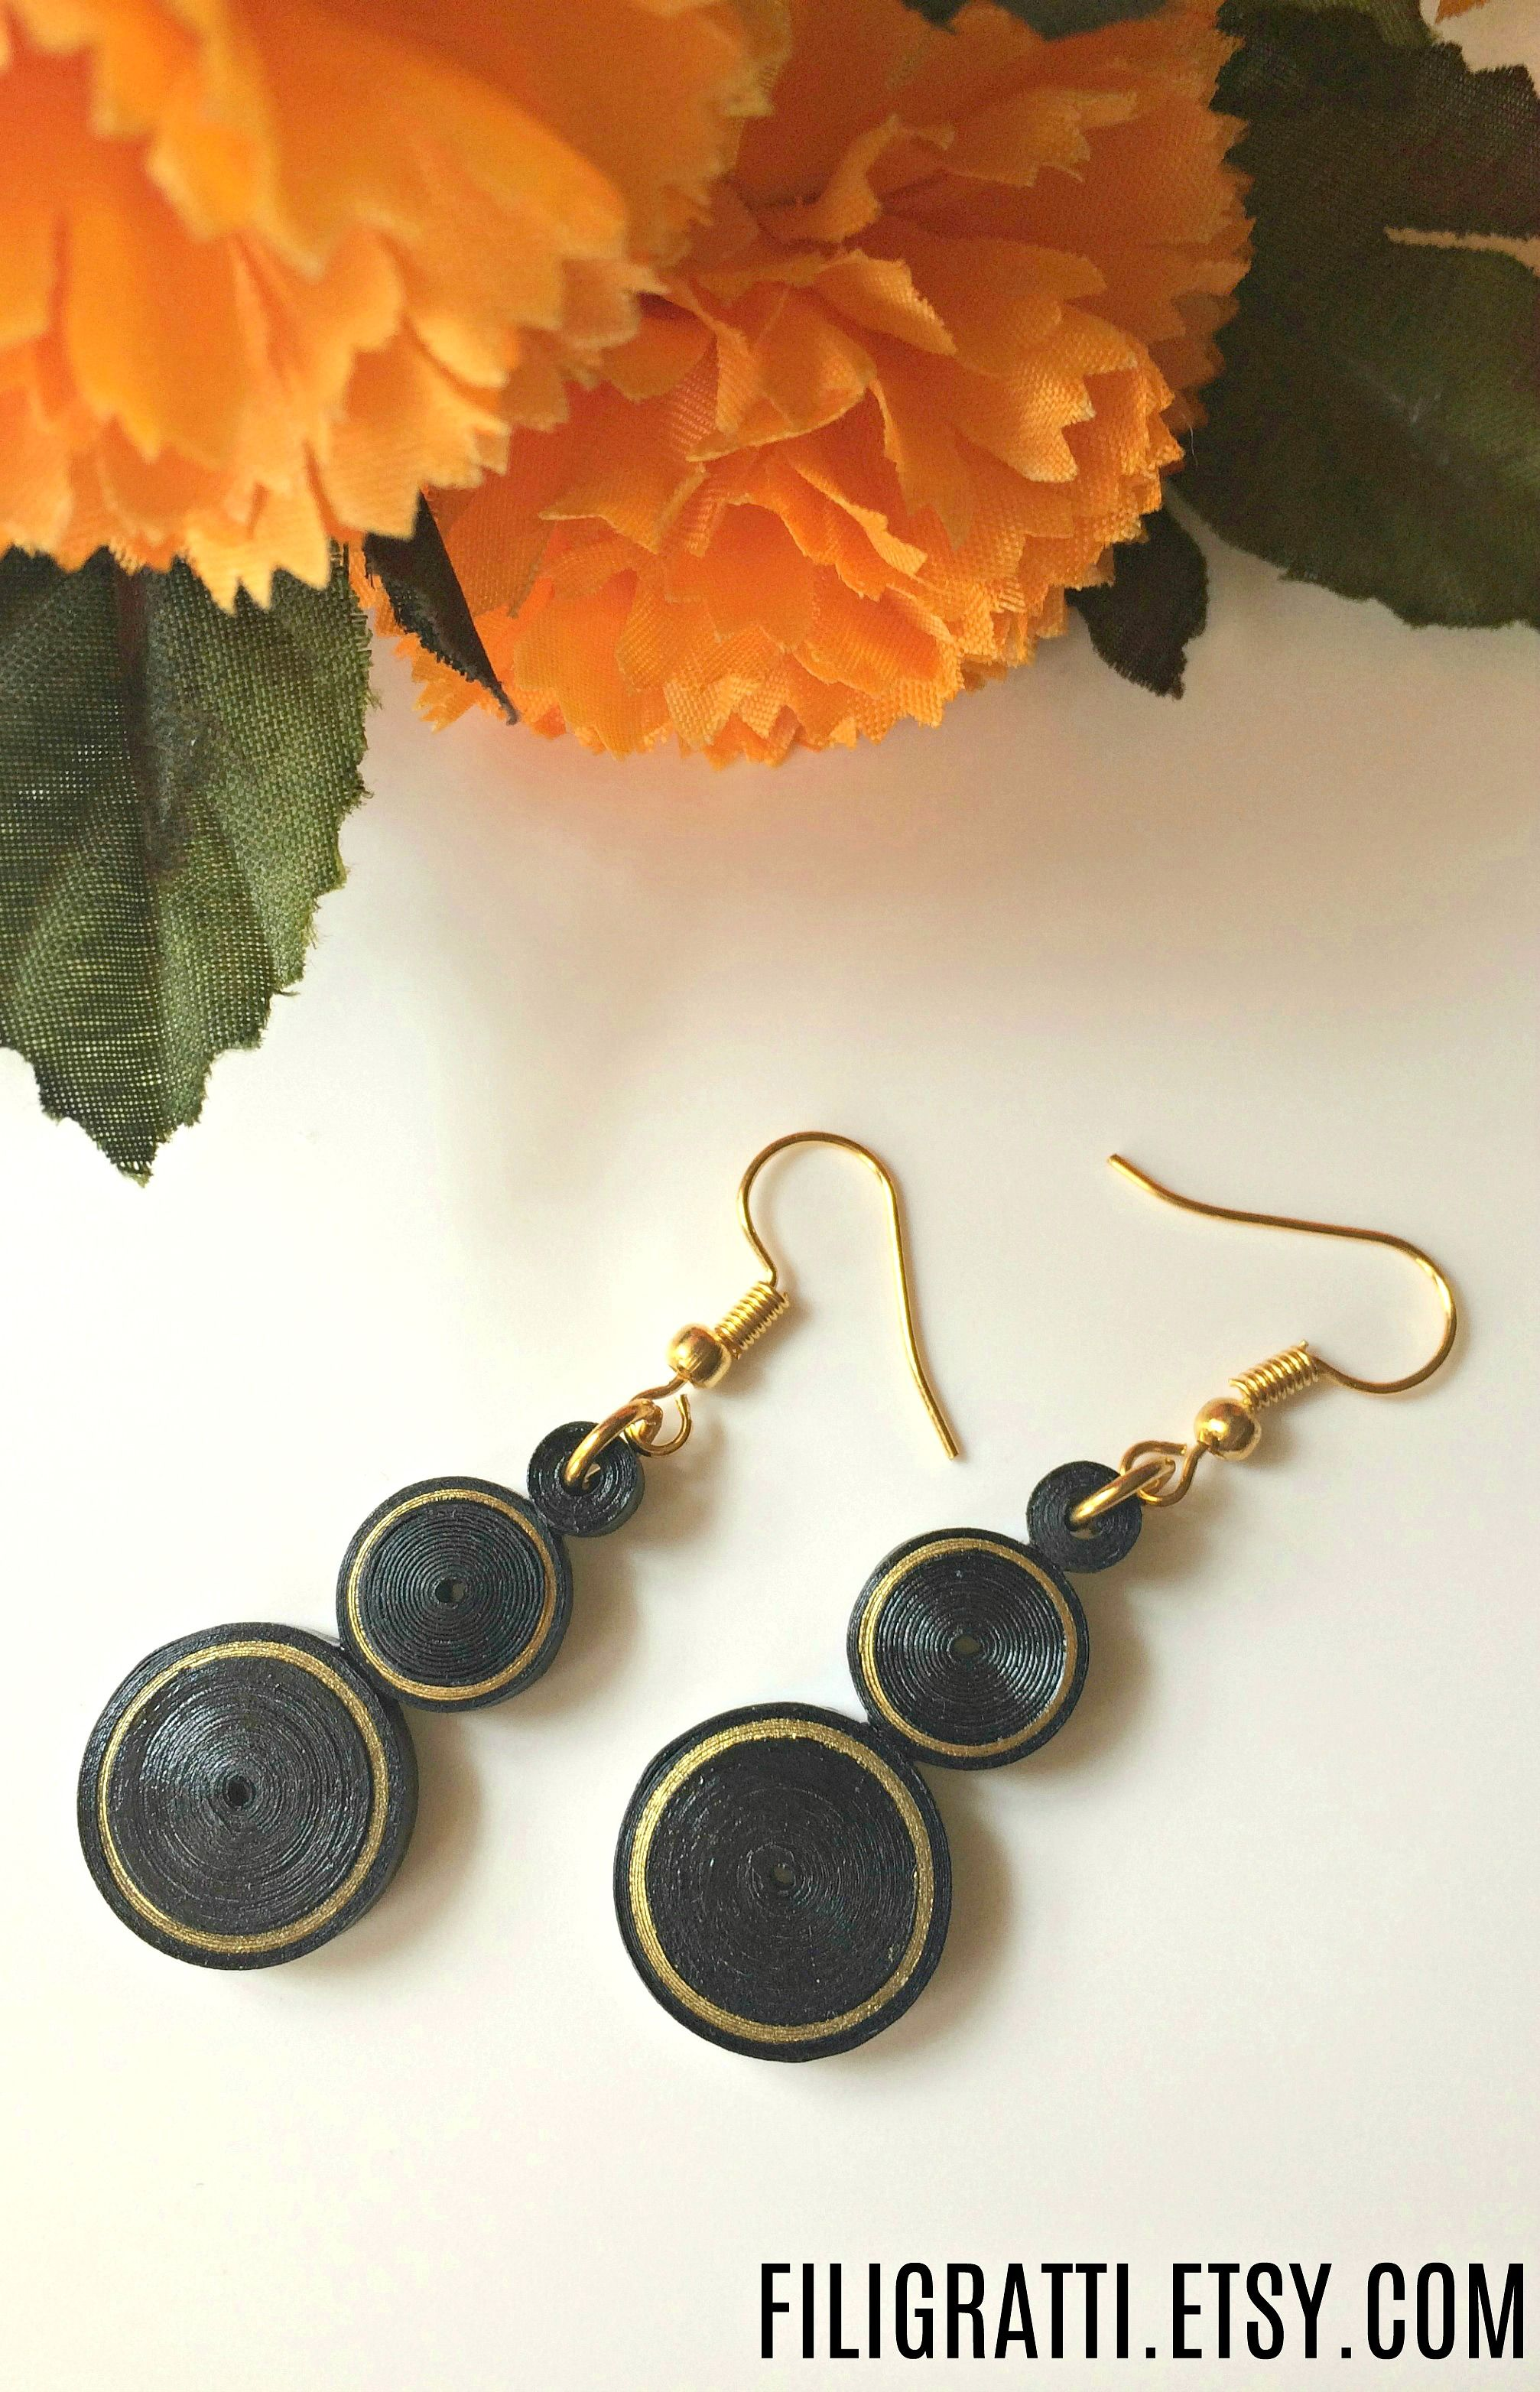 37453d5c2 Simple, Elegant & classy, that's how you'll look when you don these black  dangle earrings with gold accents. They are so light in weight, you won't  even ...